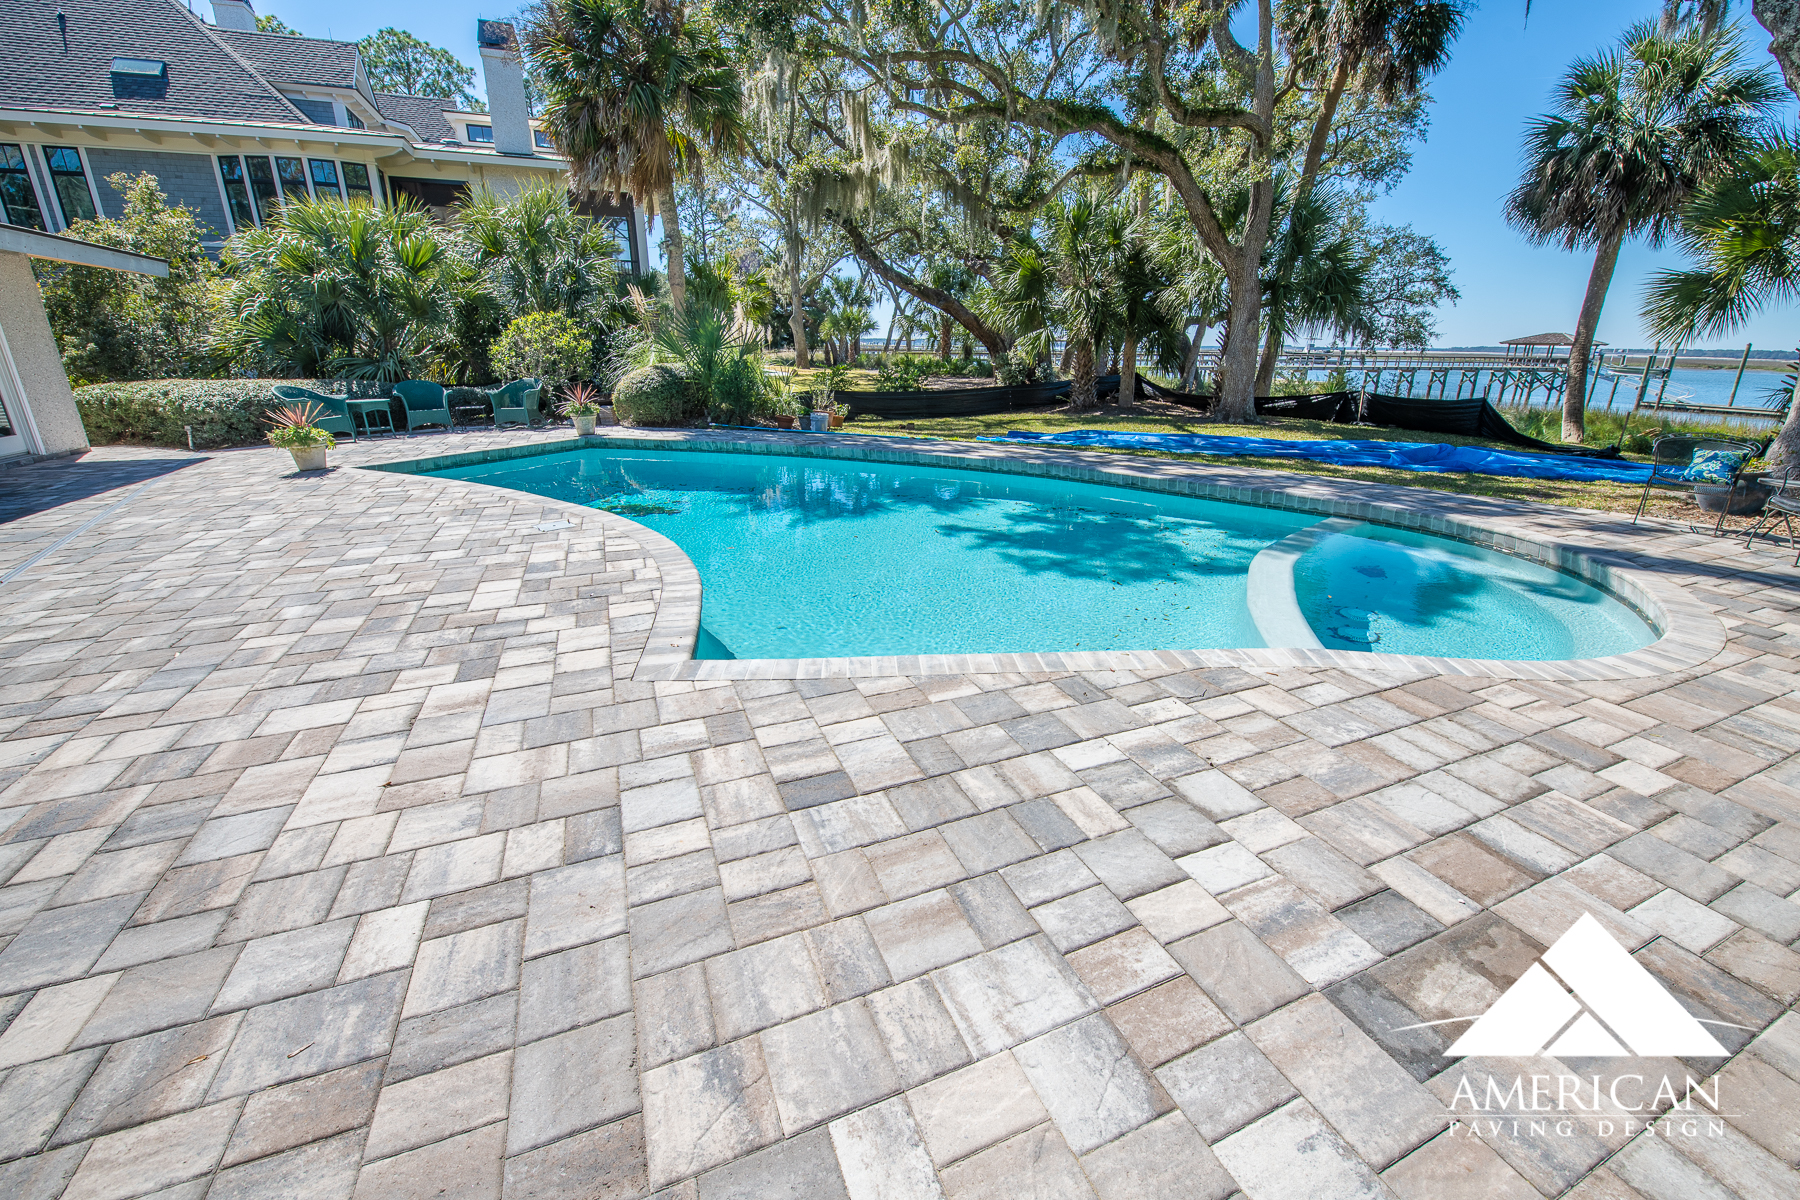 Swimming Pool Remodeling Ideas Paver Pool Deck Resurfacing American Paving Design